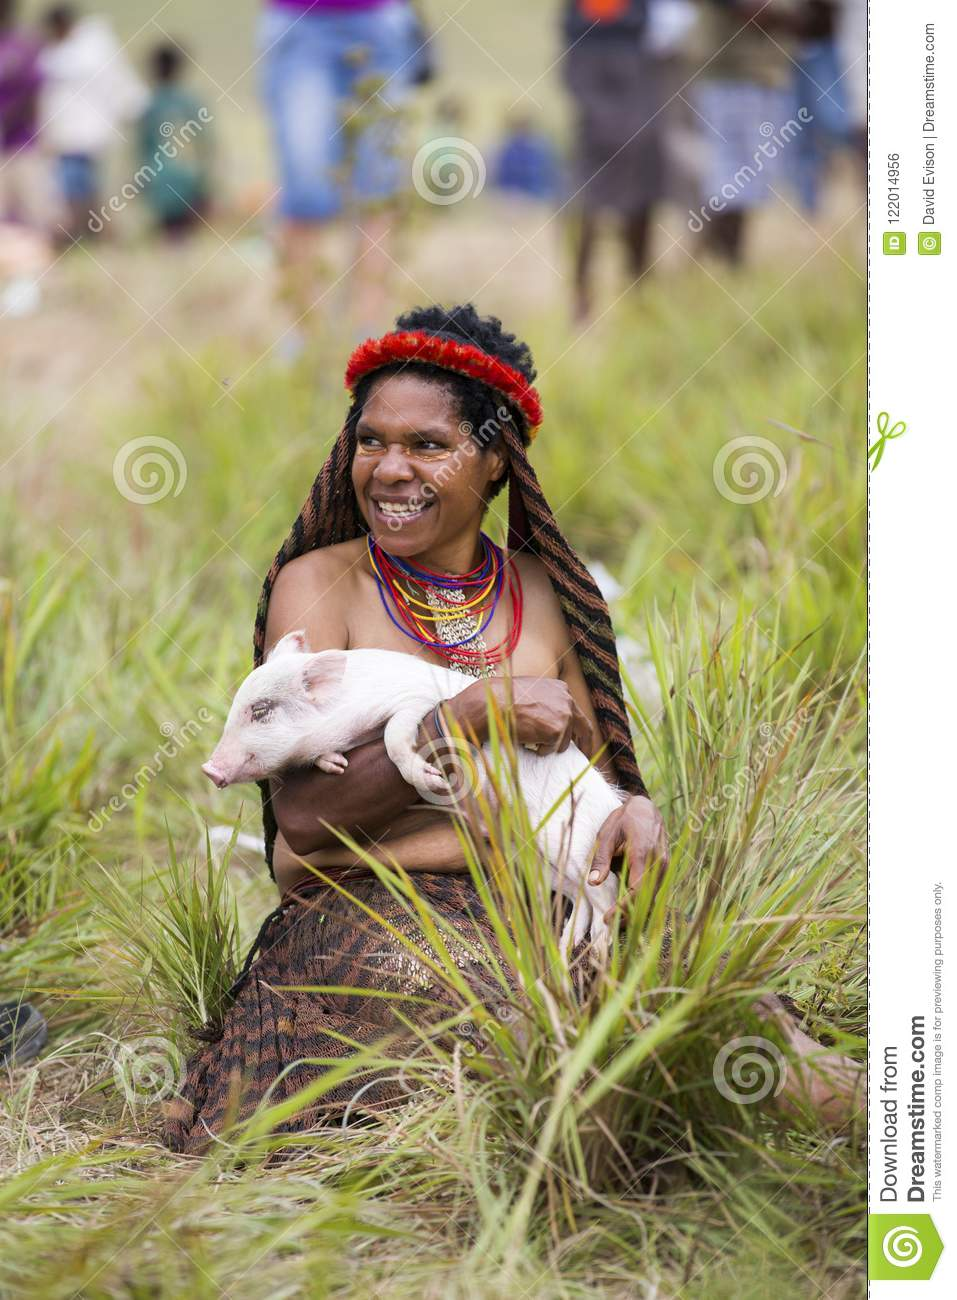 Dani tribes woman at the annual Baliem Valley Festival.